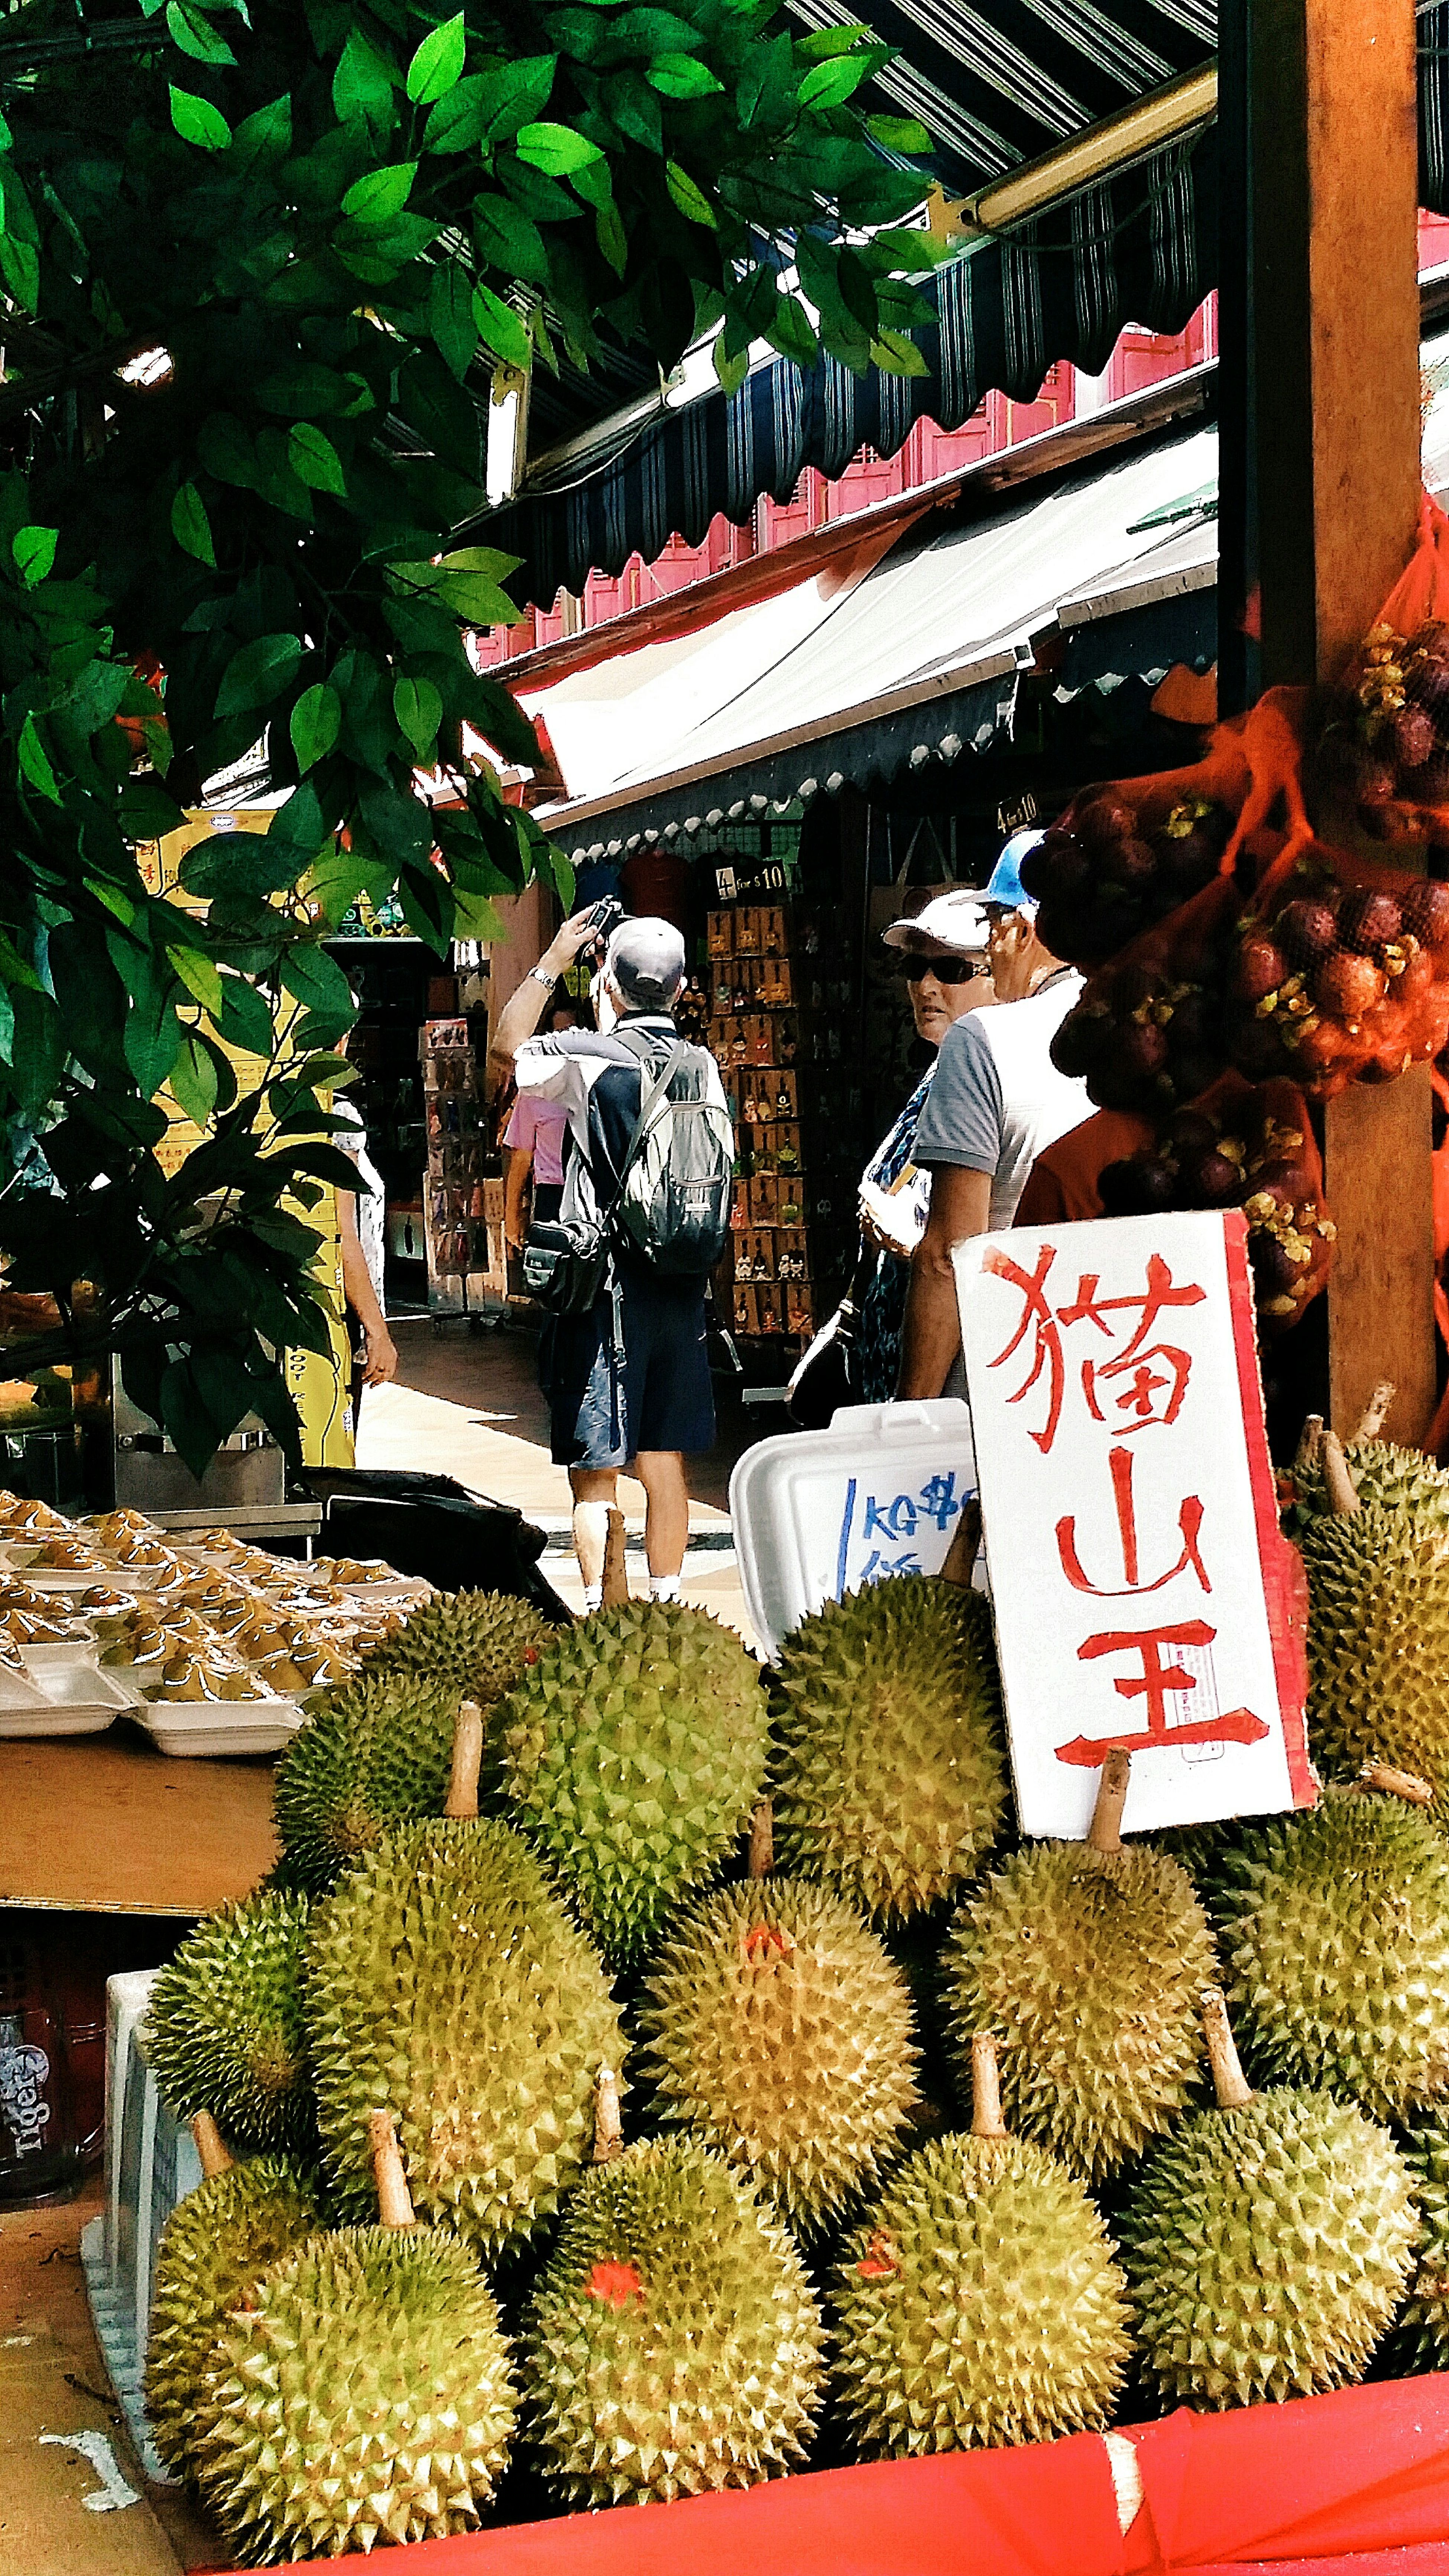 Singapore Chinatown Durians Fruits King Of Fruits Food Prickly Shell Mao Shan Wang Durians 猫山王 from malaysia